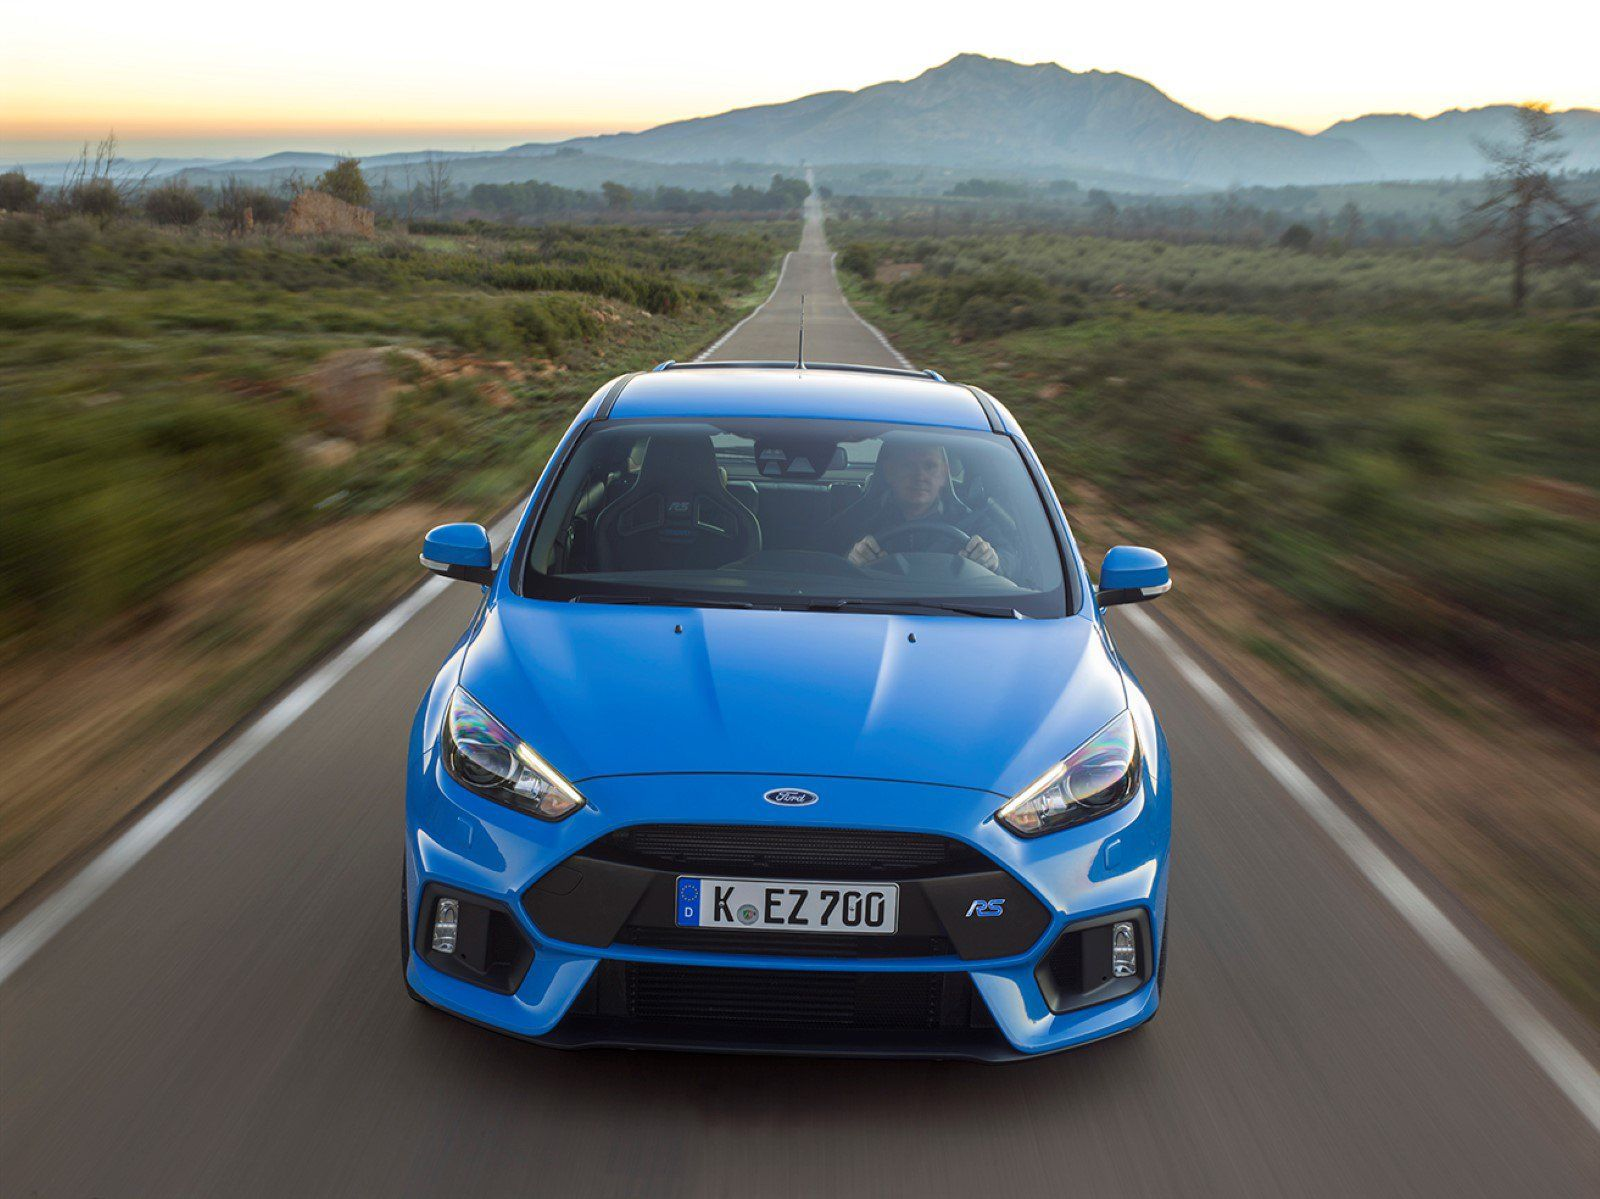 2016 ford focus rs review gtspirit cool cars pinterest ford focus rs review focus rs and ford focus